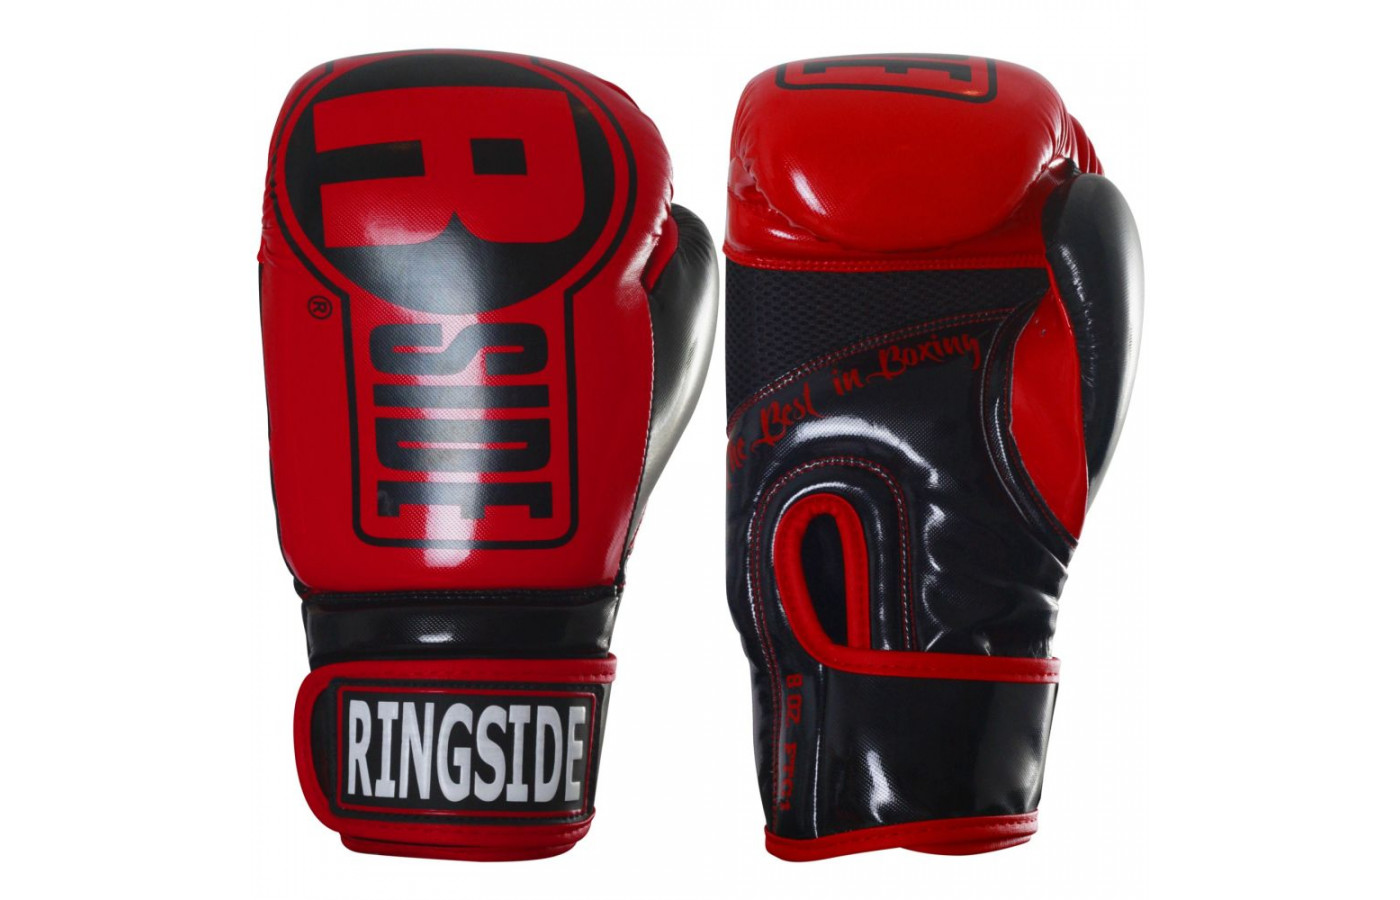 ringside boxing gloves